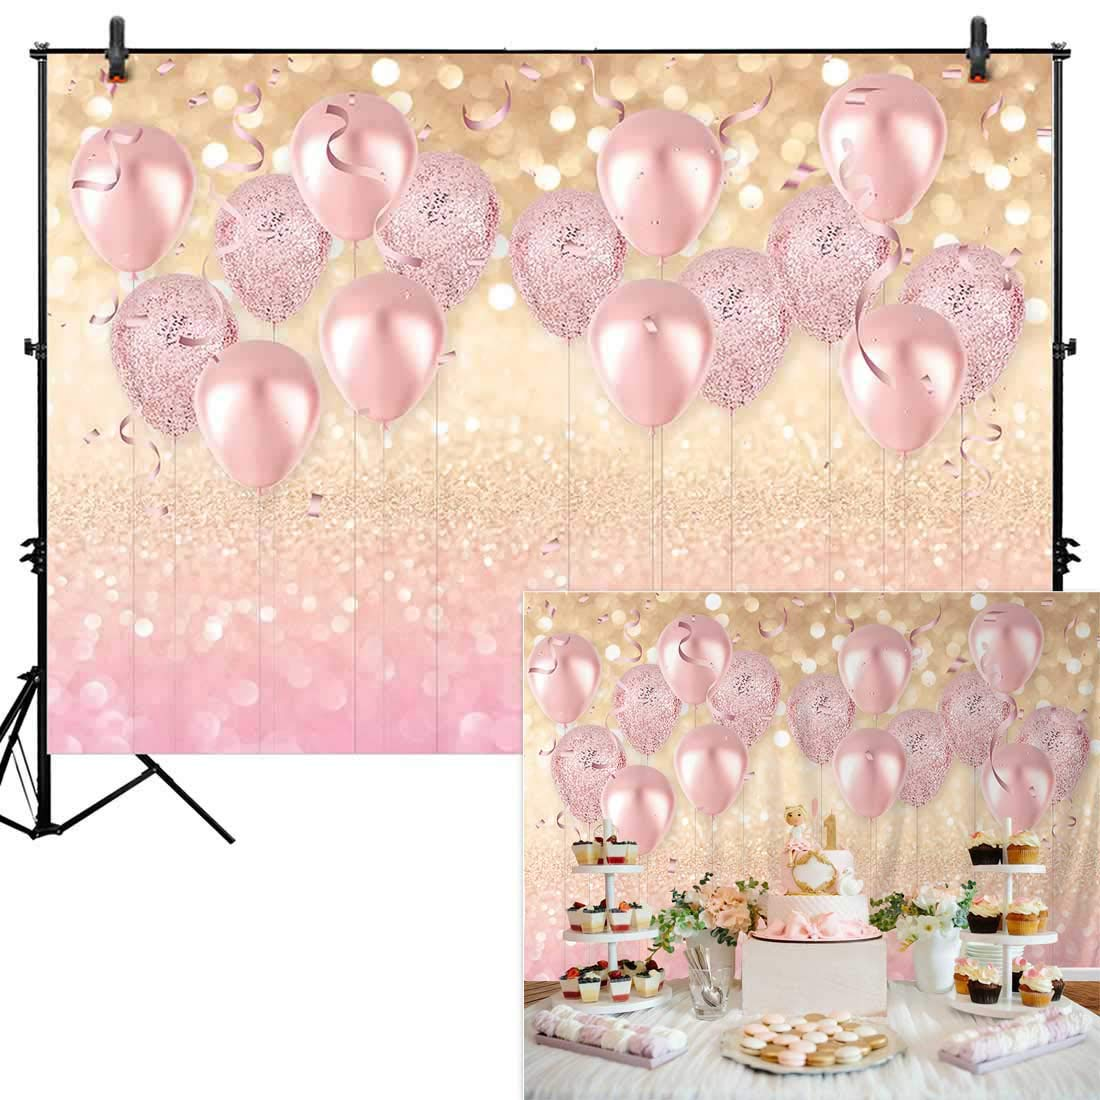 Allenjoy 7x5ft Durable Soft Fabric Rose Gold Party Decorations Supplies Pink Balloon Glittter Bokeh Photo Backdrop Birthday for Girl Baby Bridal Shower Bachelorette Photography Background Studio Props